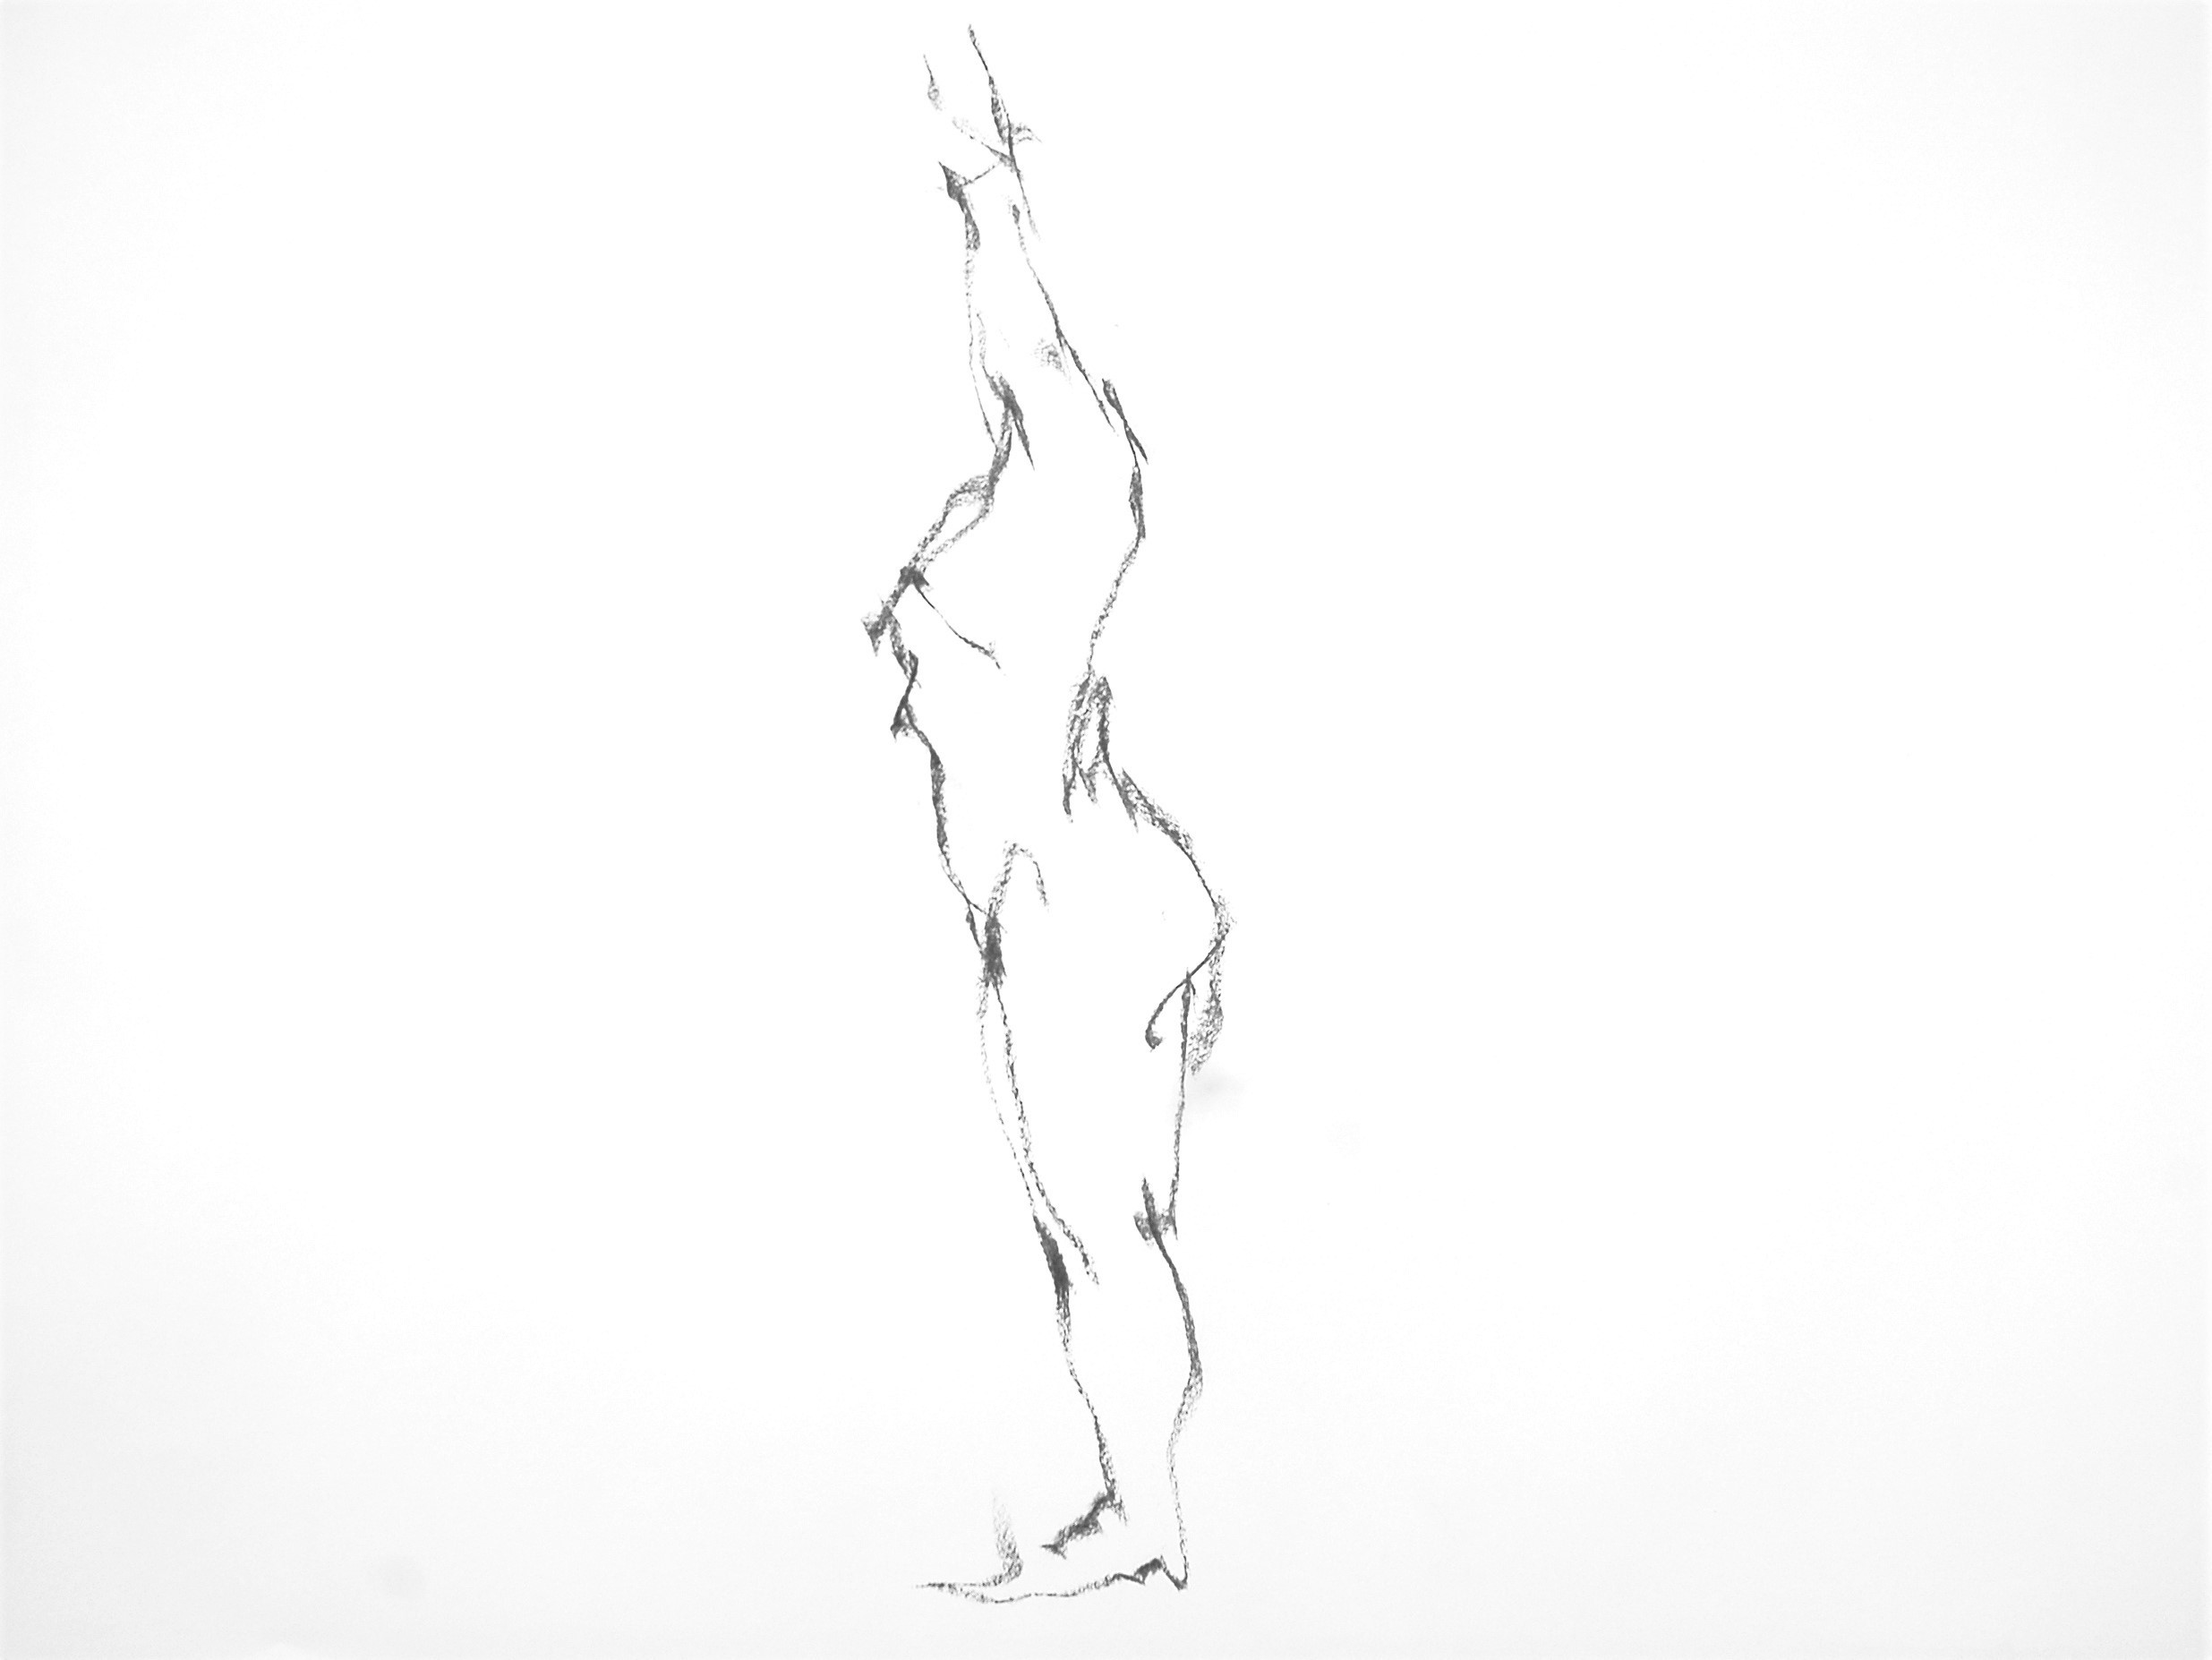 《 (Moveing) ―― 連続する90 second croquis  5 》_f0159856_07433842.jpg